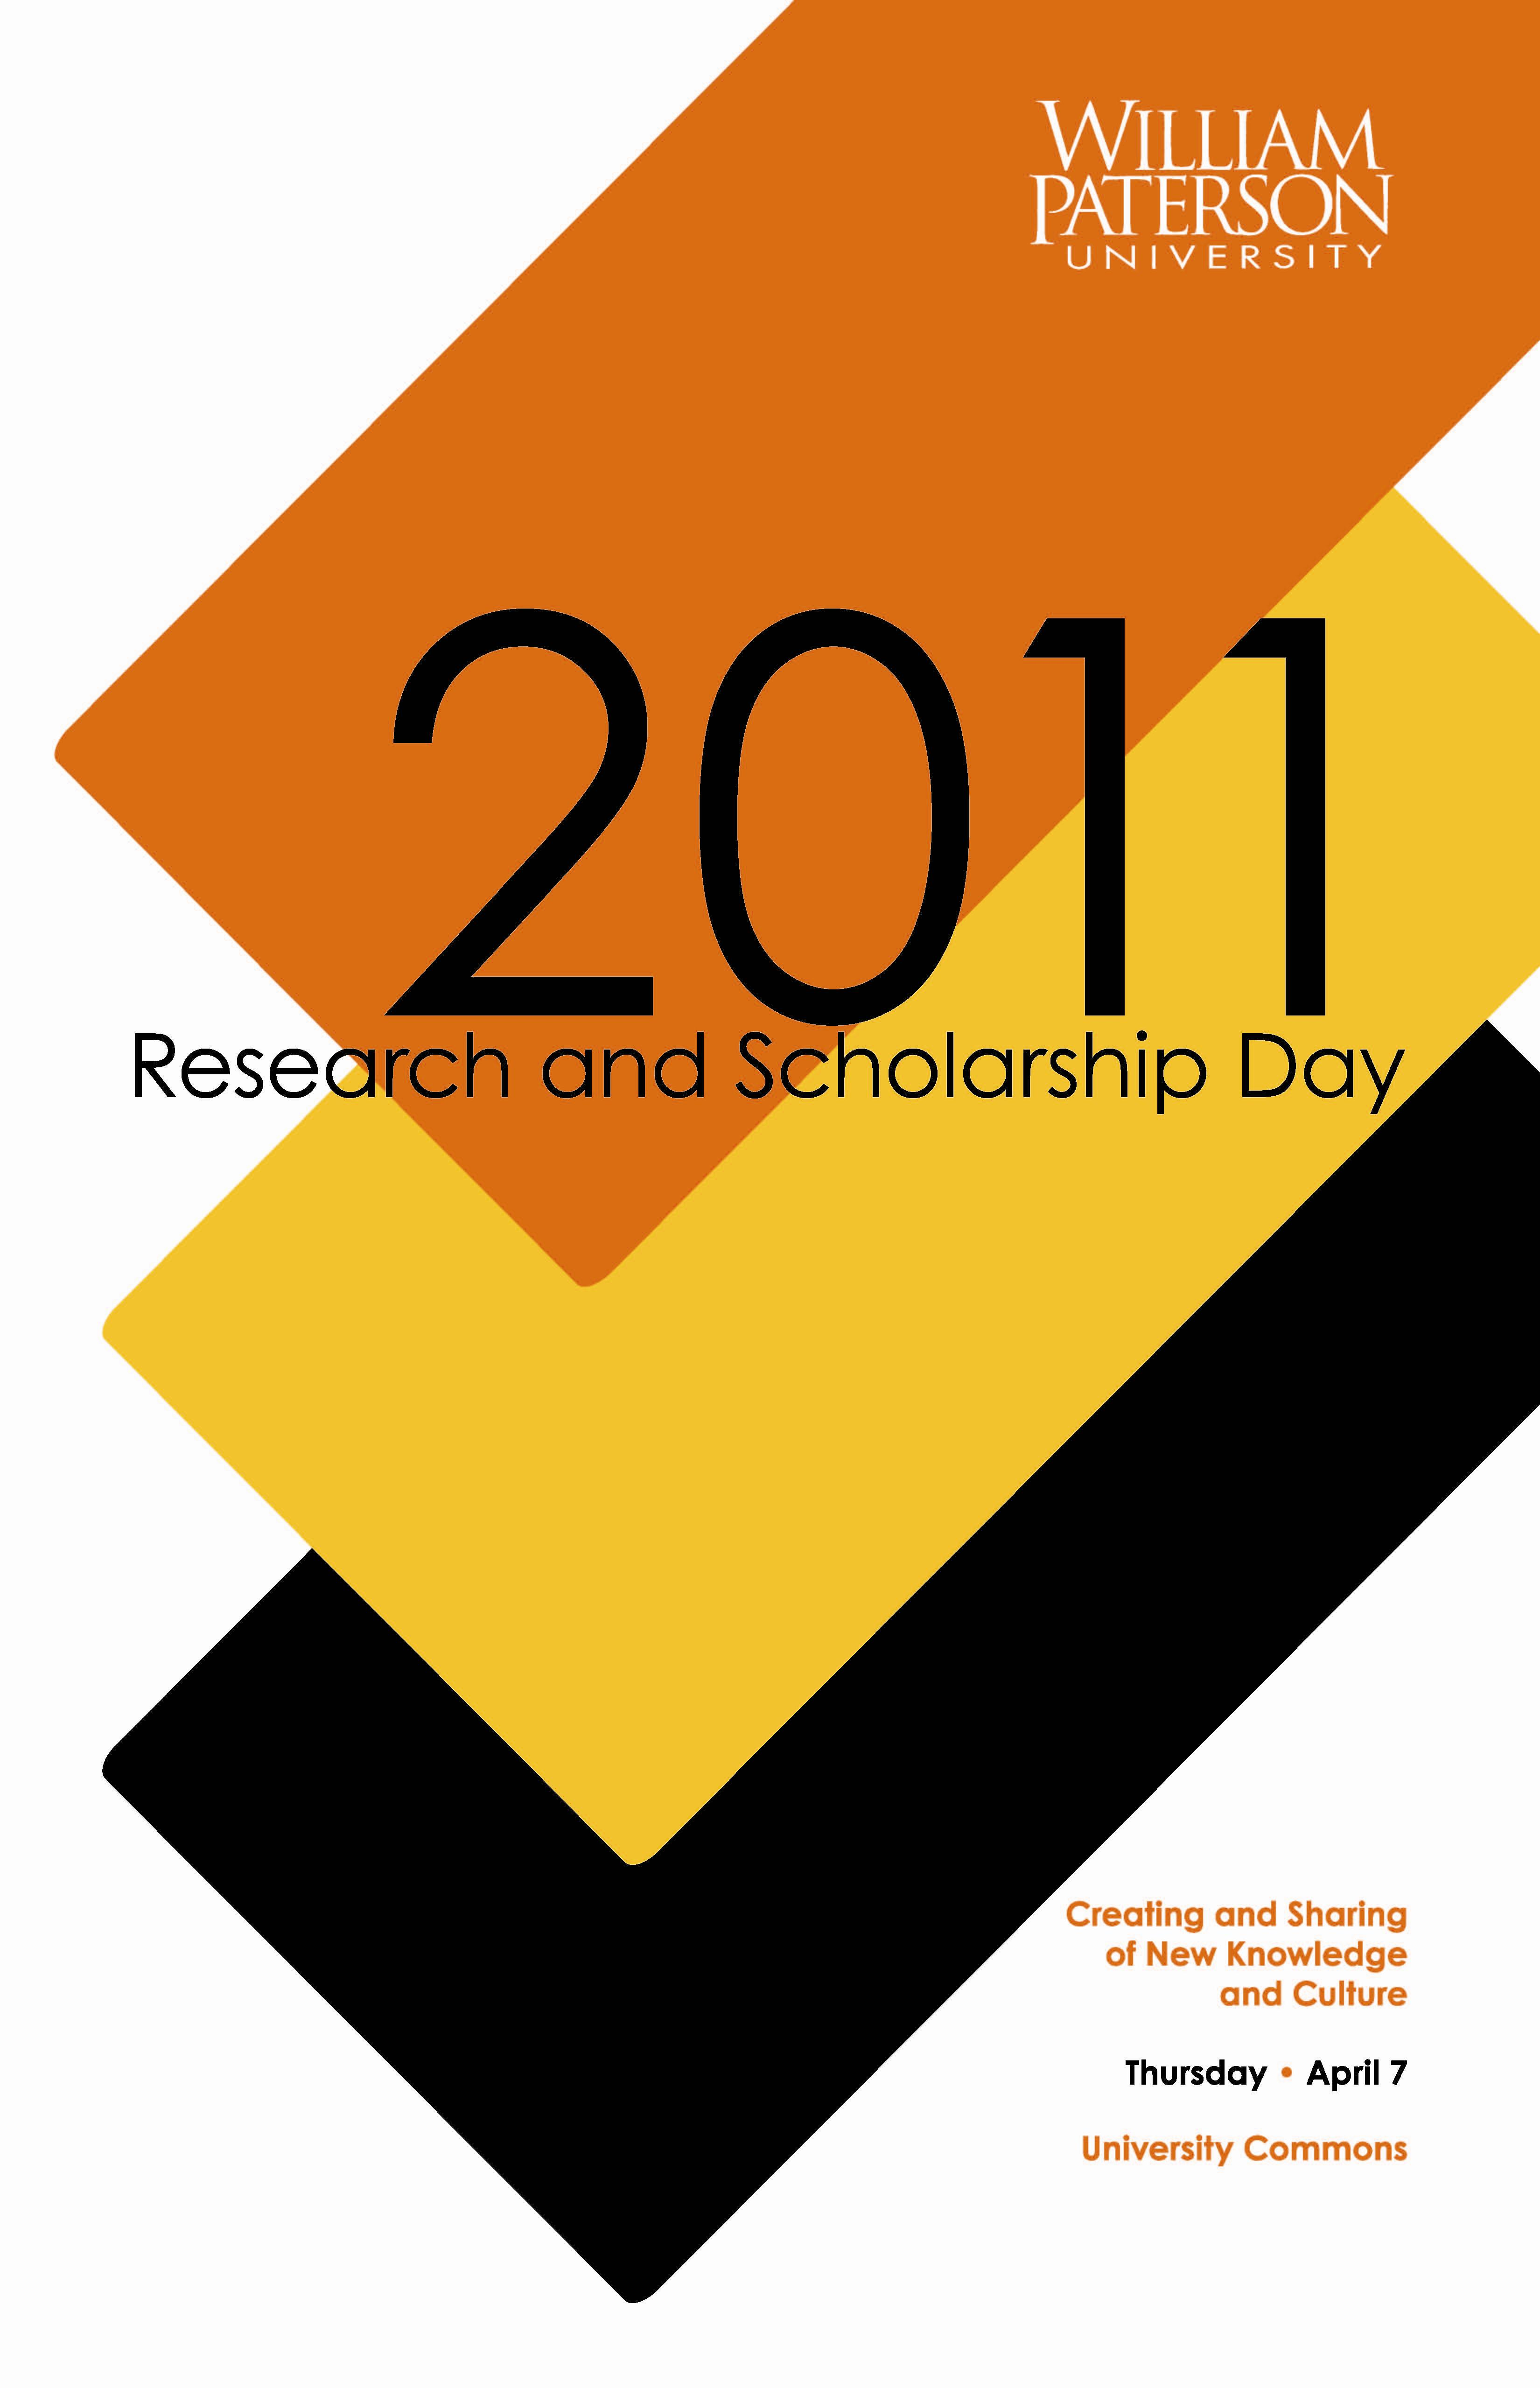 University Research and Scholarship Day 2011 Poster